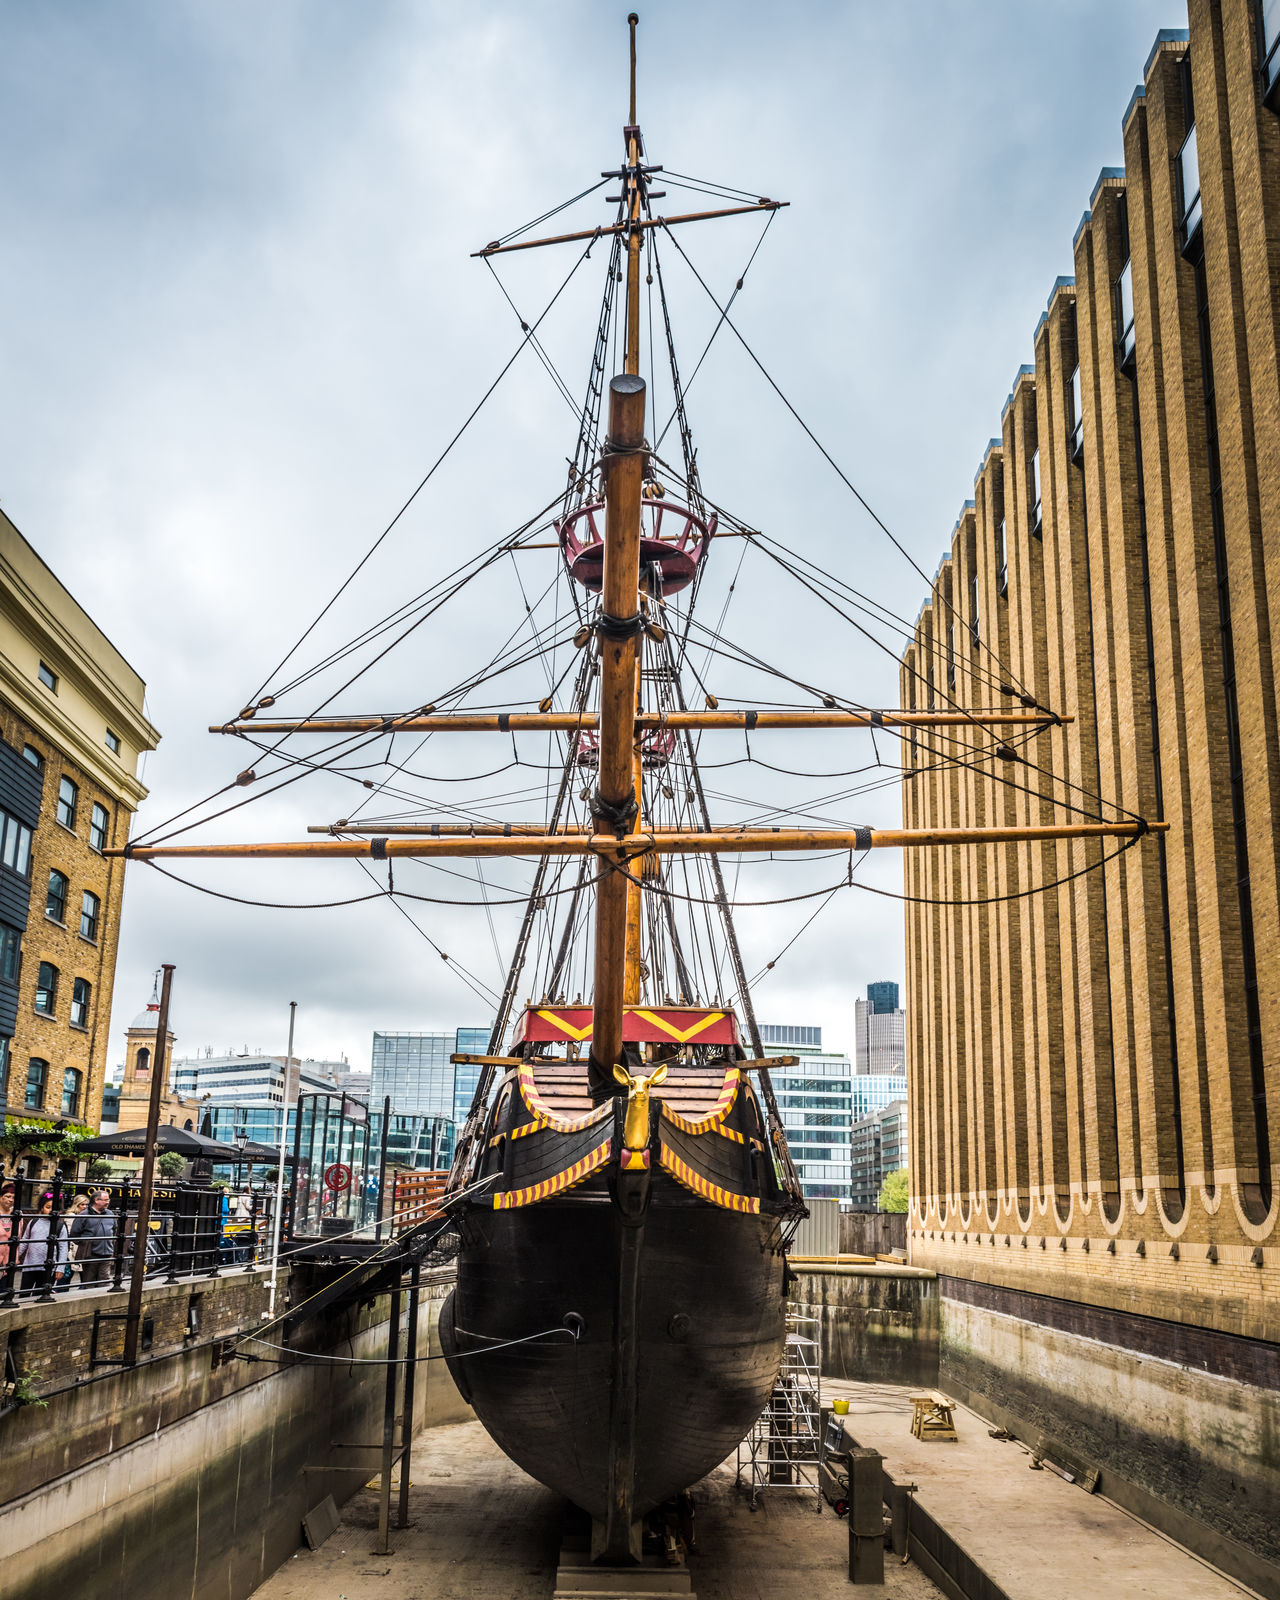 The Golden Hinde Architecture Buildings City Cloud - Sky Dry Dock Golden Hinde History Navy Old Perspective Rigging Sailing Ship Ship Tourism View